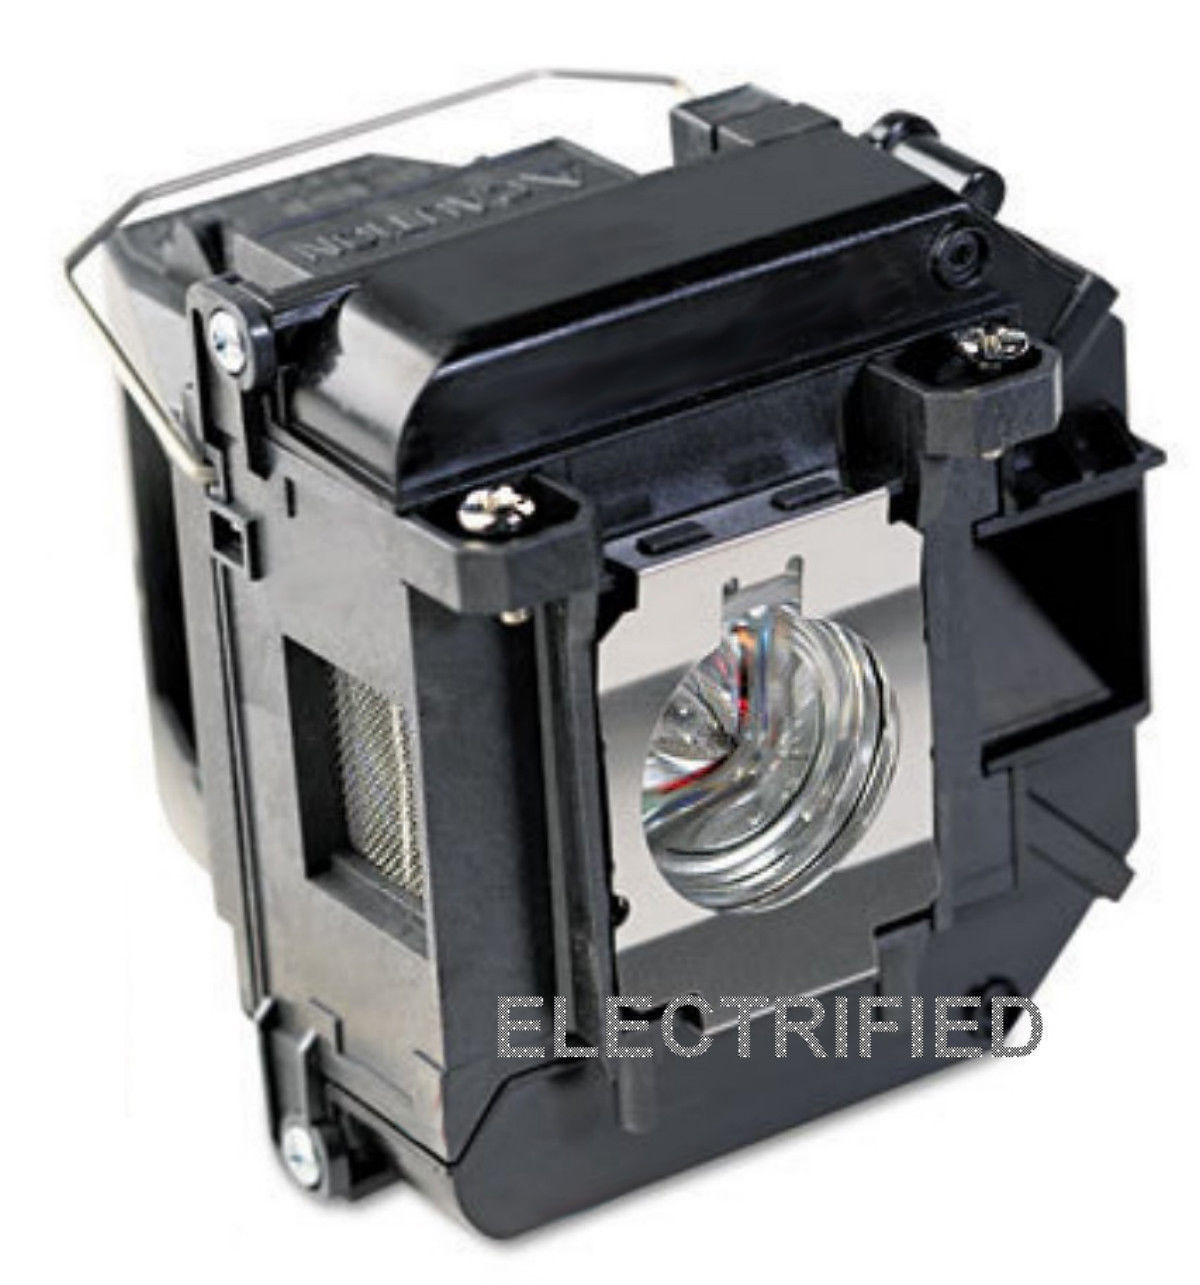 EPSON ELPLP60 OEM LAMP FOR EB-93e EB-95 EB-96W H381A H382A H383  Made By EPSON